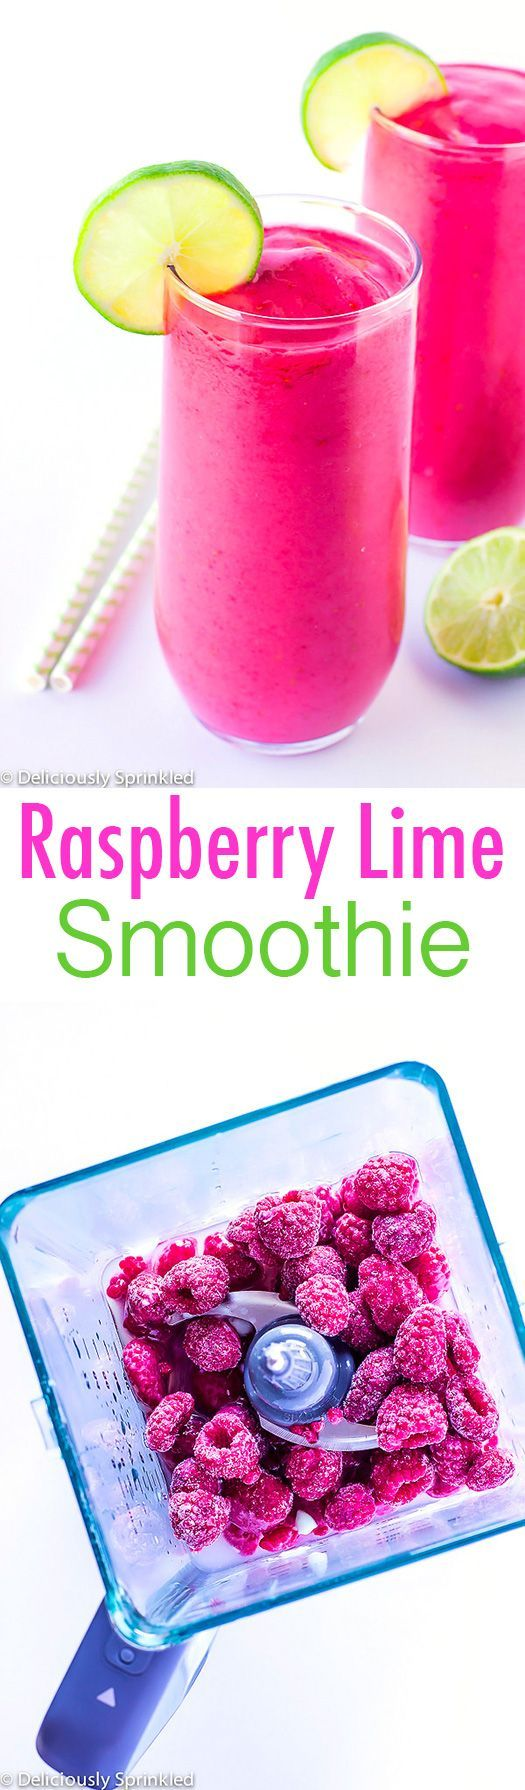 Raspberry Lime Smoothie